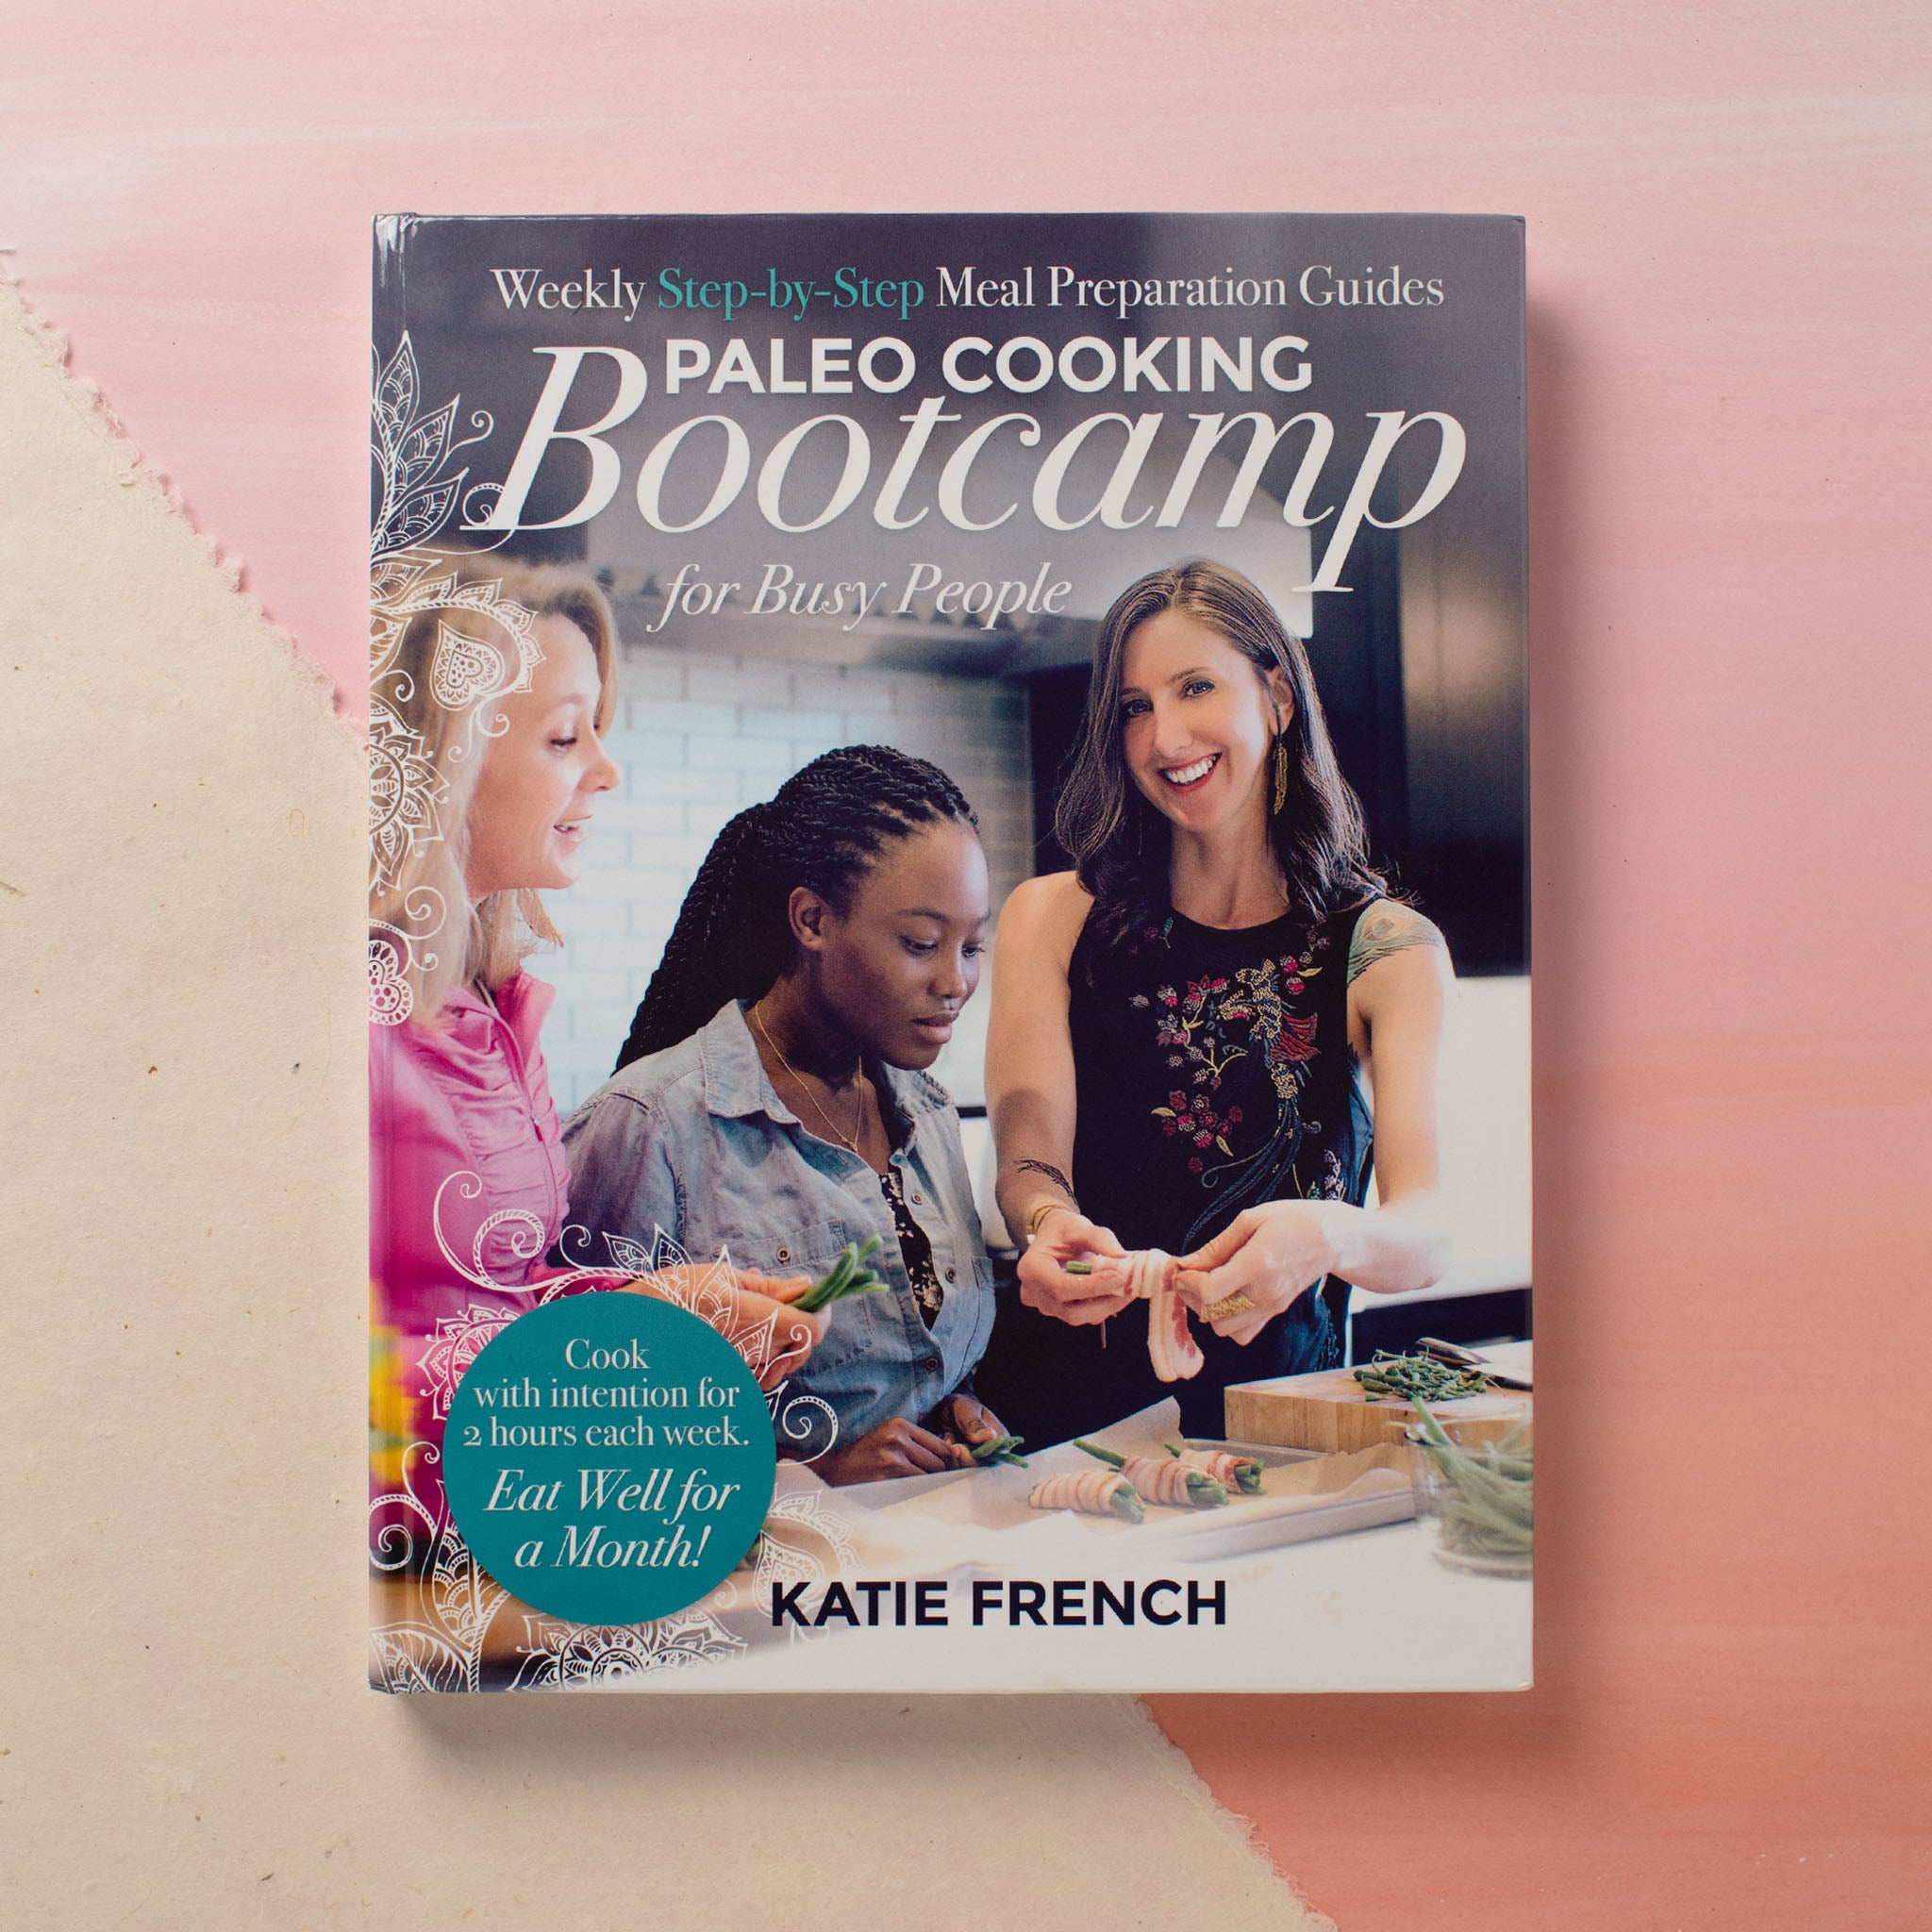 Paleo cooking bootcamp for busy people primal blueprint paleo cooking bootcamp for busy people malvernweather Gallery